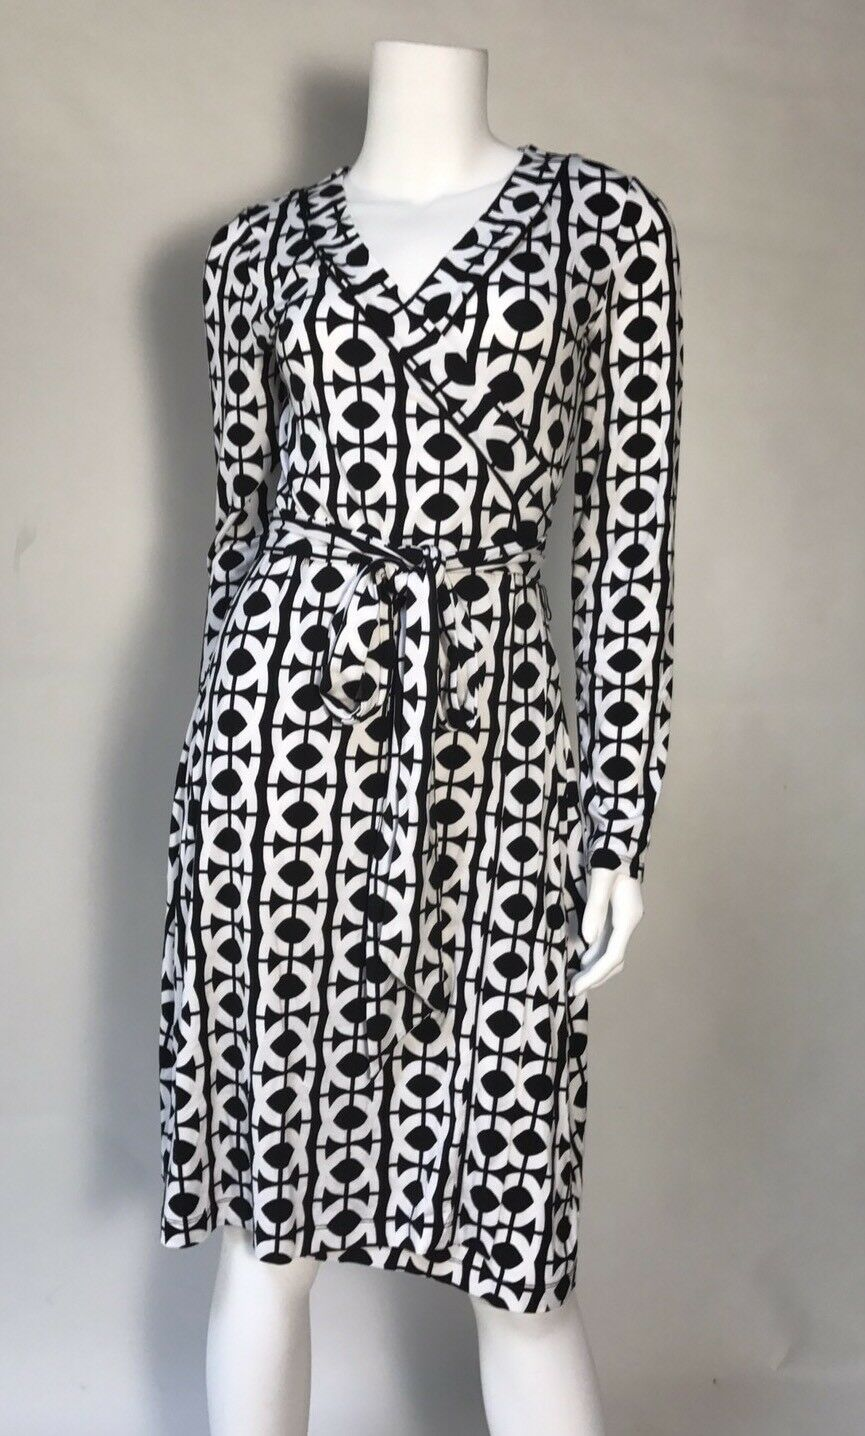 Preowned Banana Republic Wrap Dress SZ S Stretch Long Sleeves